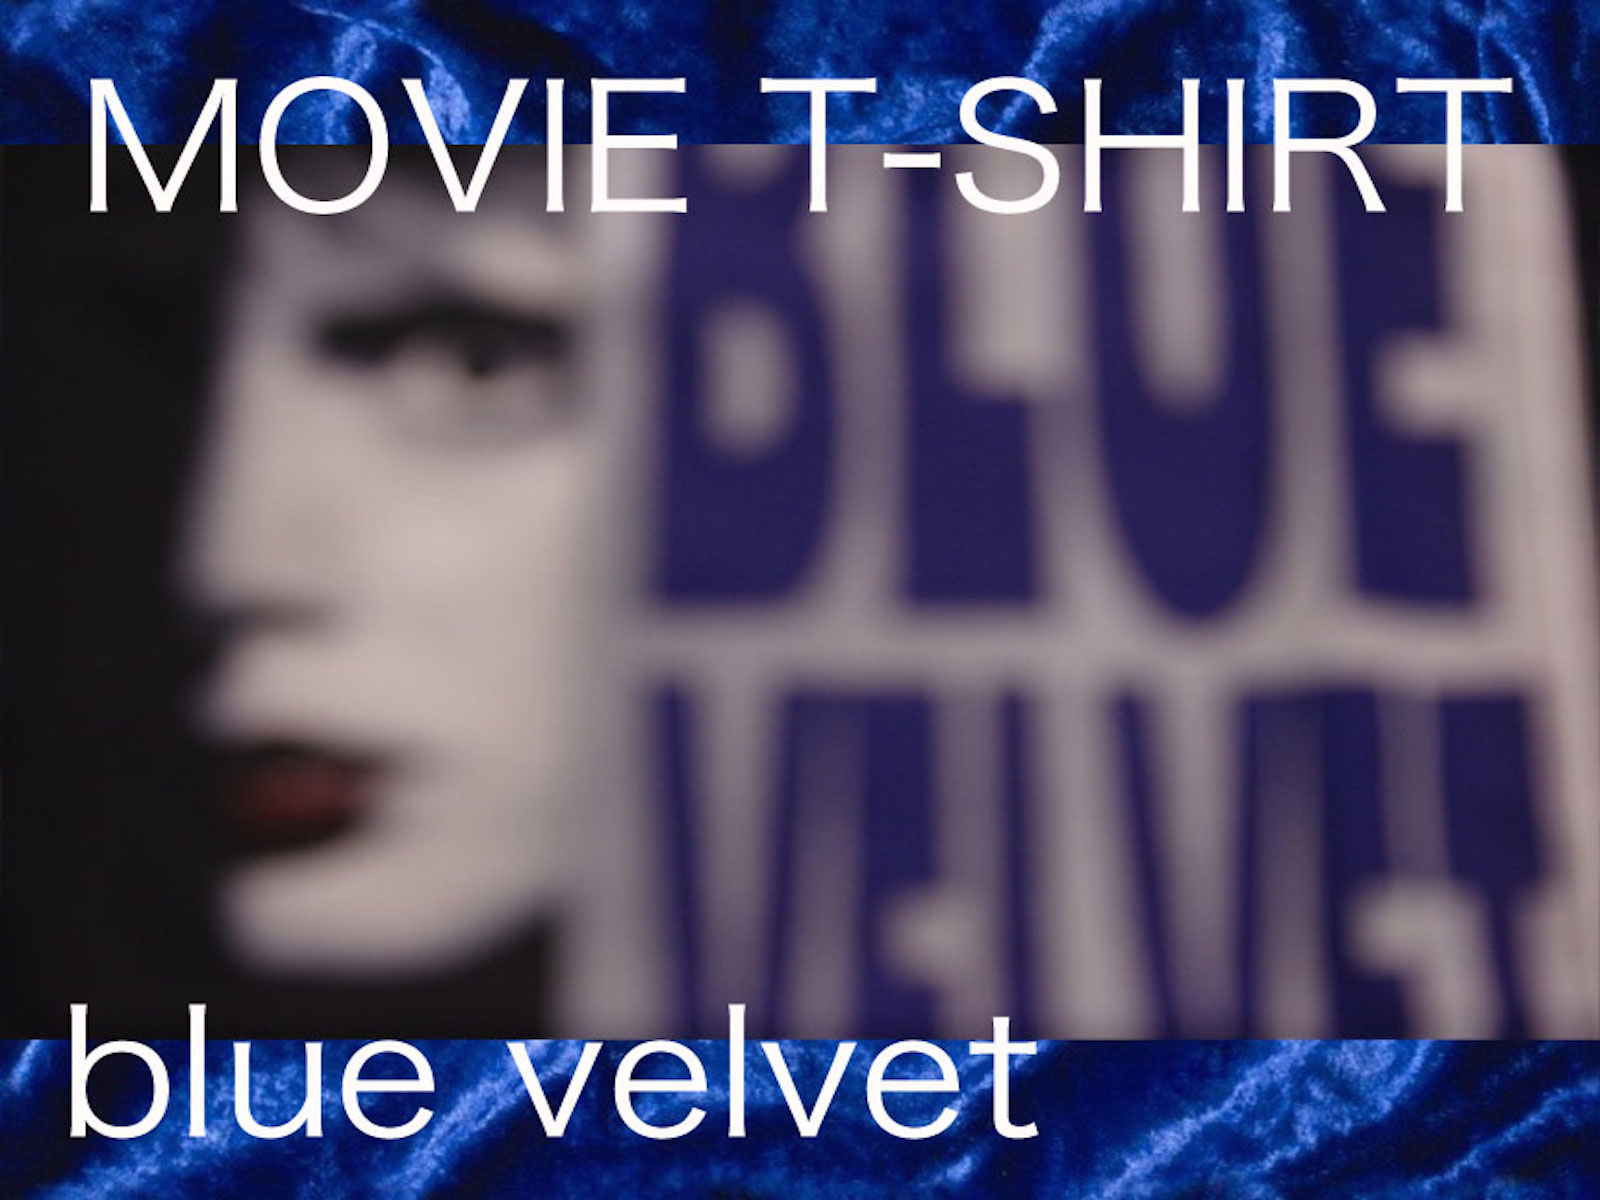 BLUE VELVET directed by DAVID LYNCH vol.3 MOVIE T-SHIRT